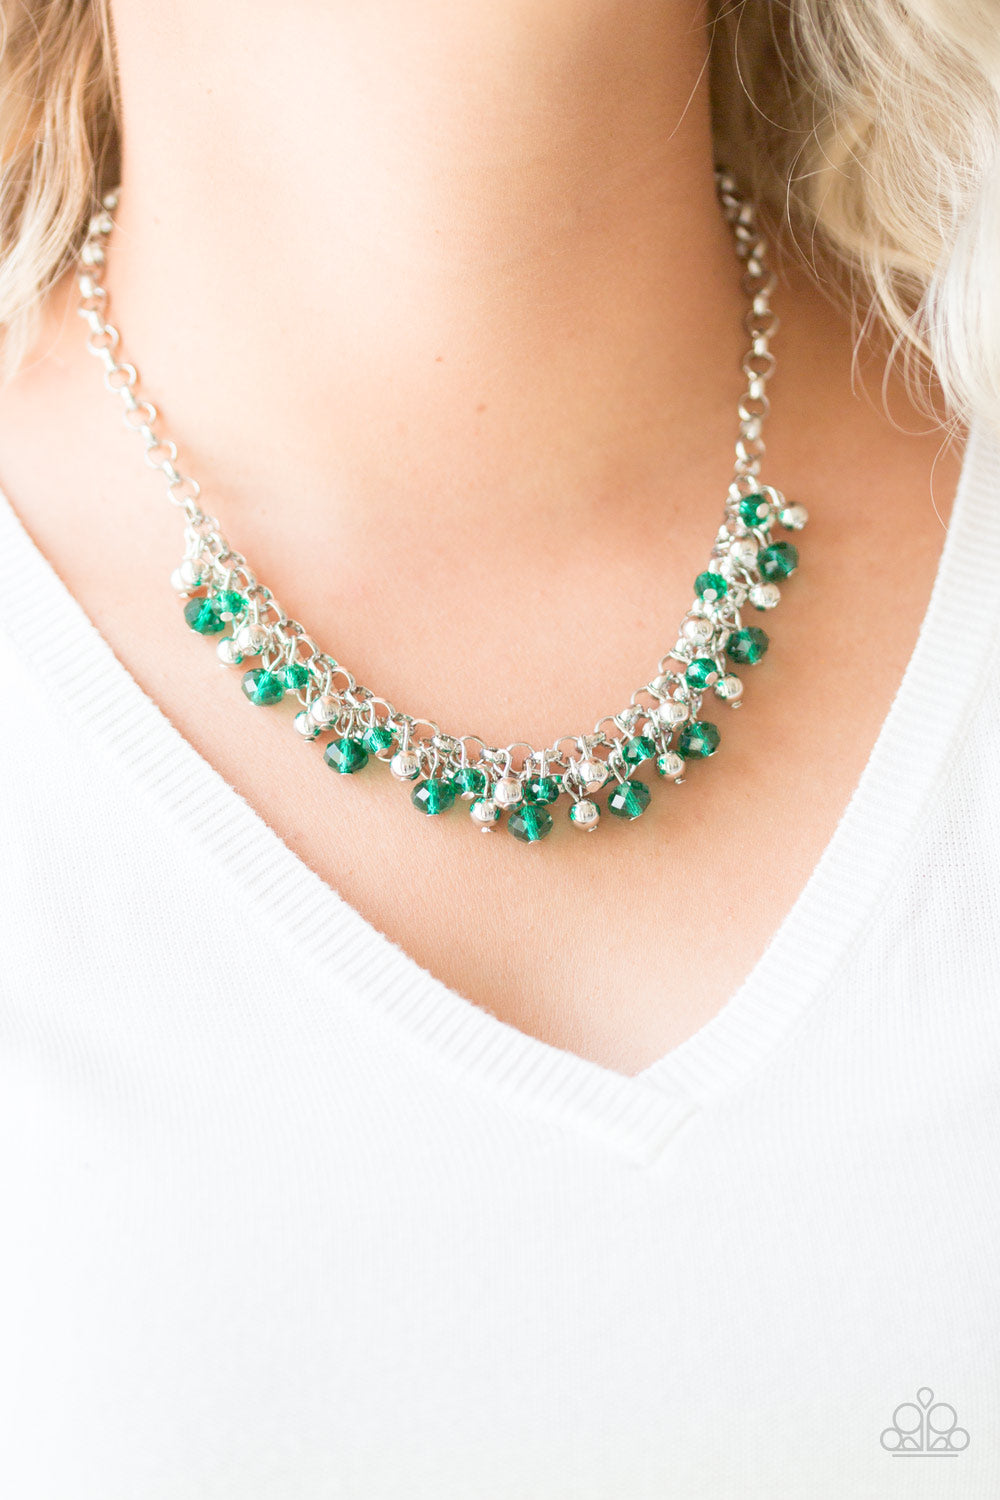 Trust Fund Baby - green - Paparazzi necklace